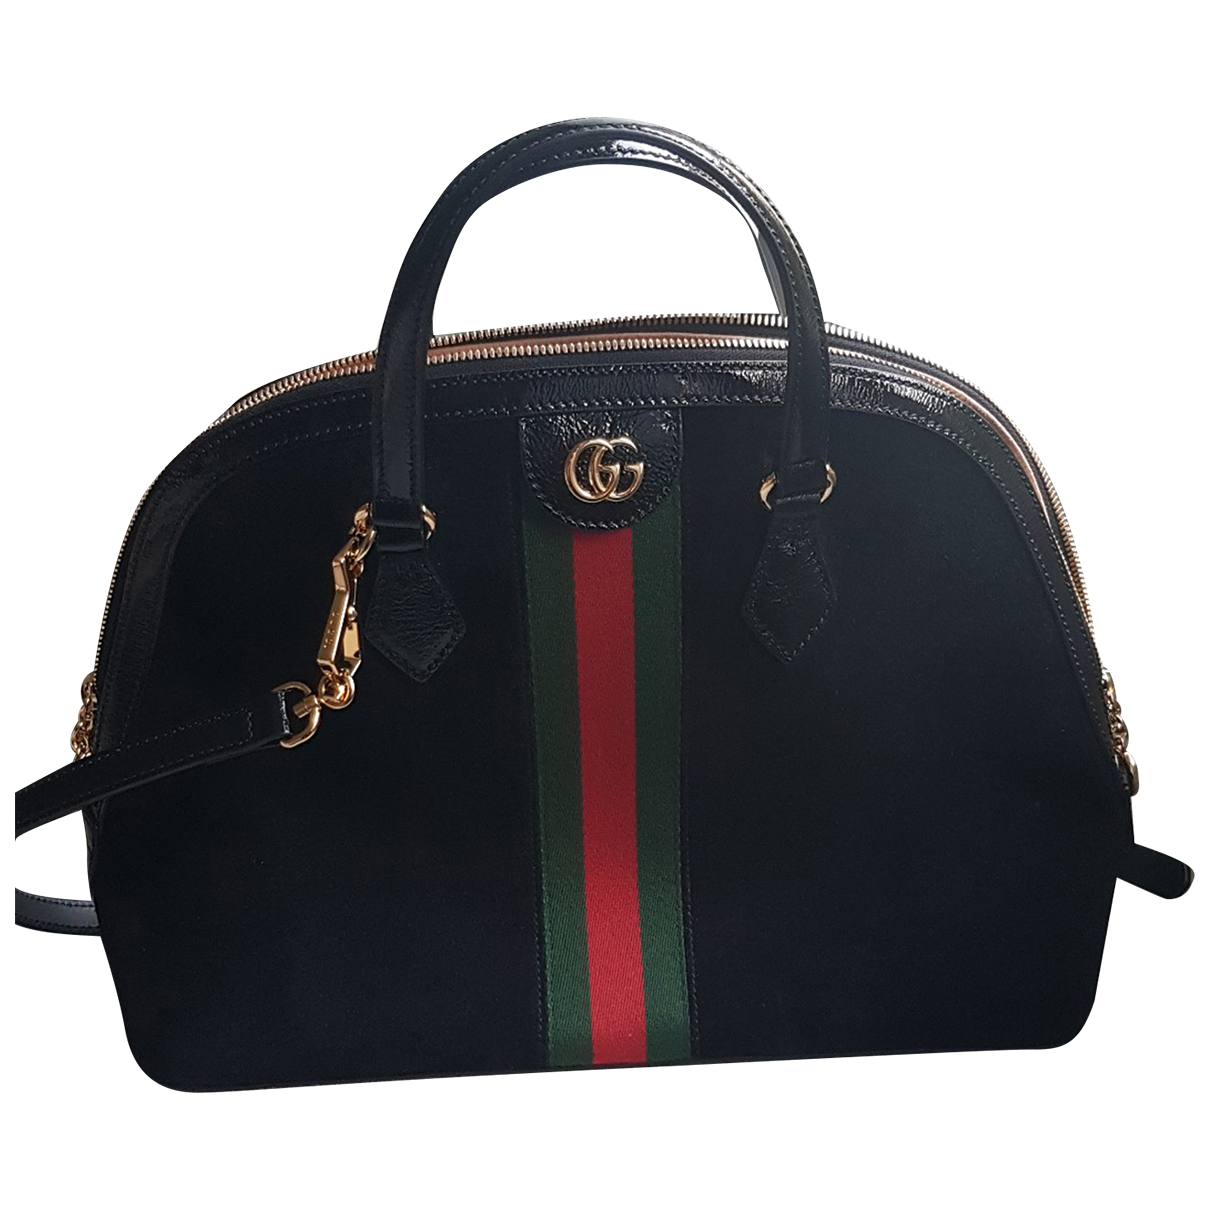 Gucci Ophidia Black Leather handbag for Women N